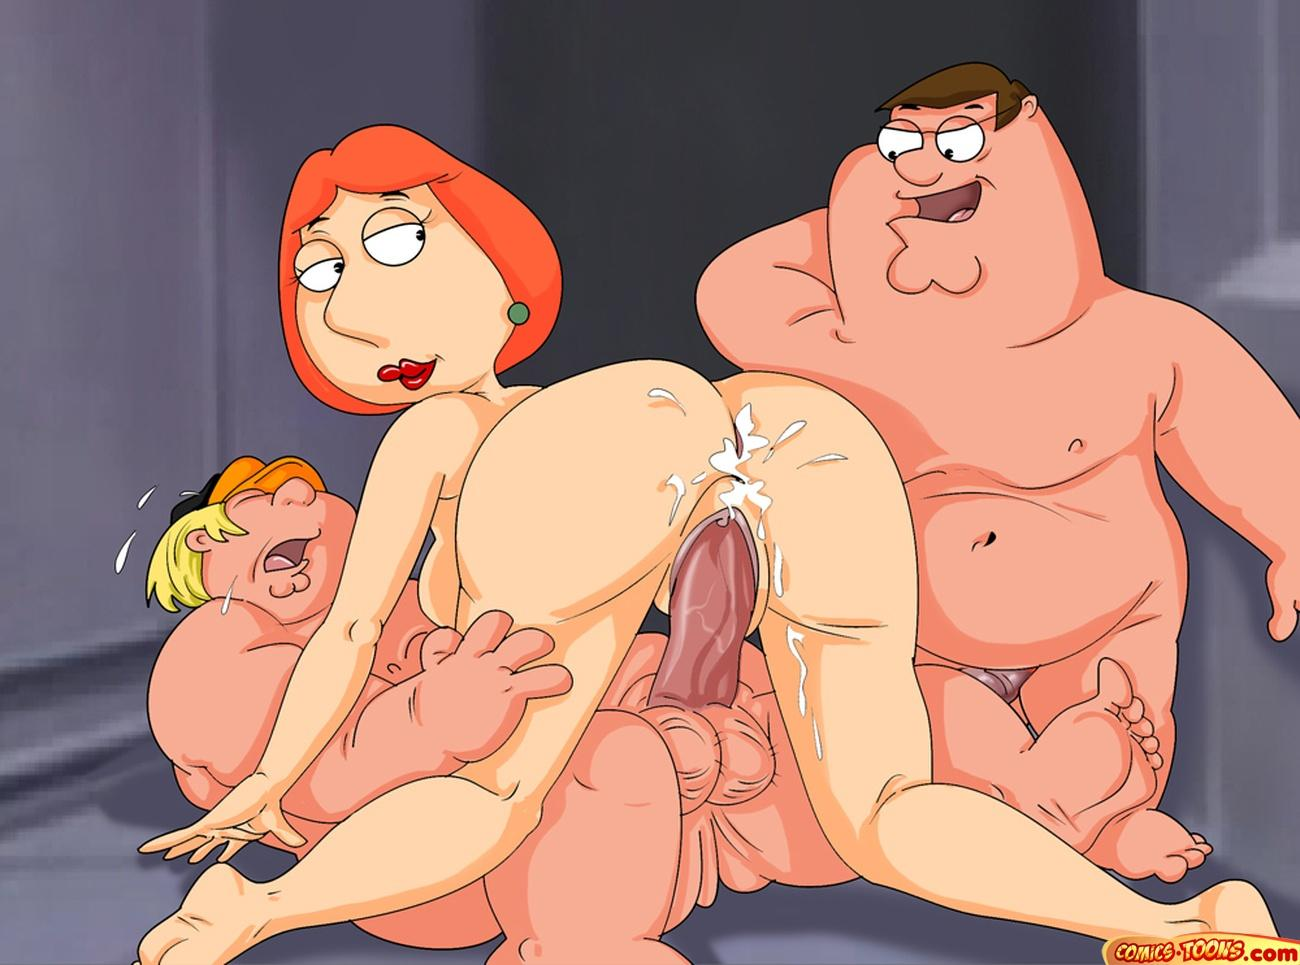 Family guy naked pics, free facial twink video